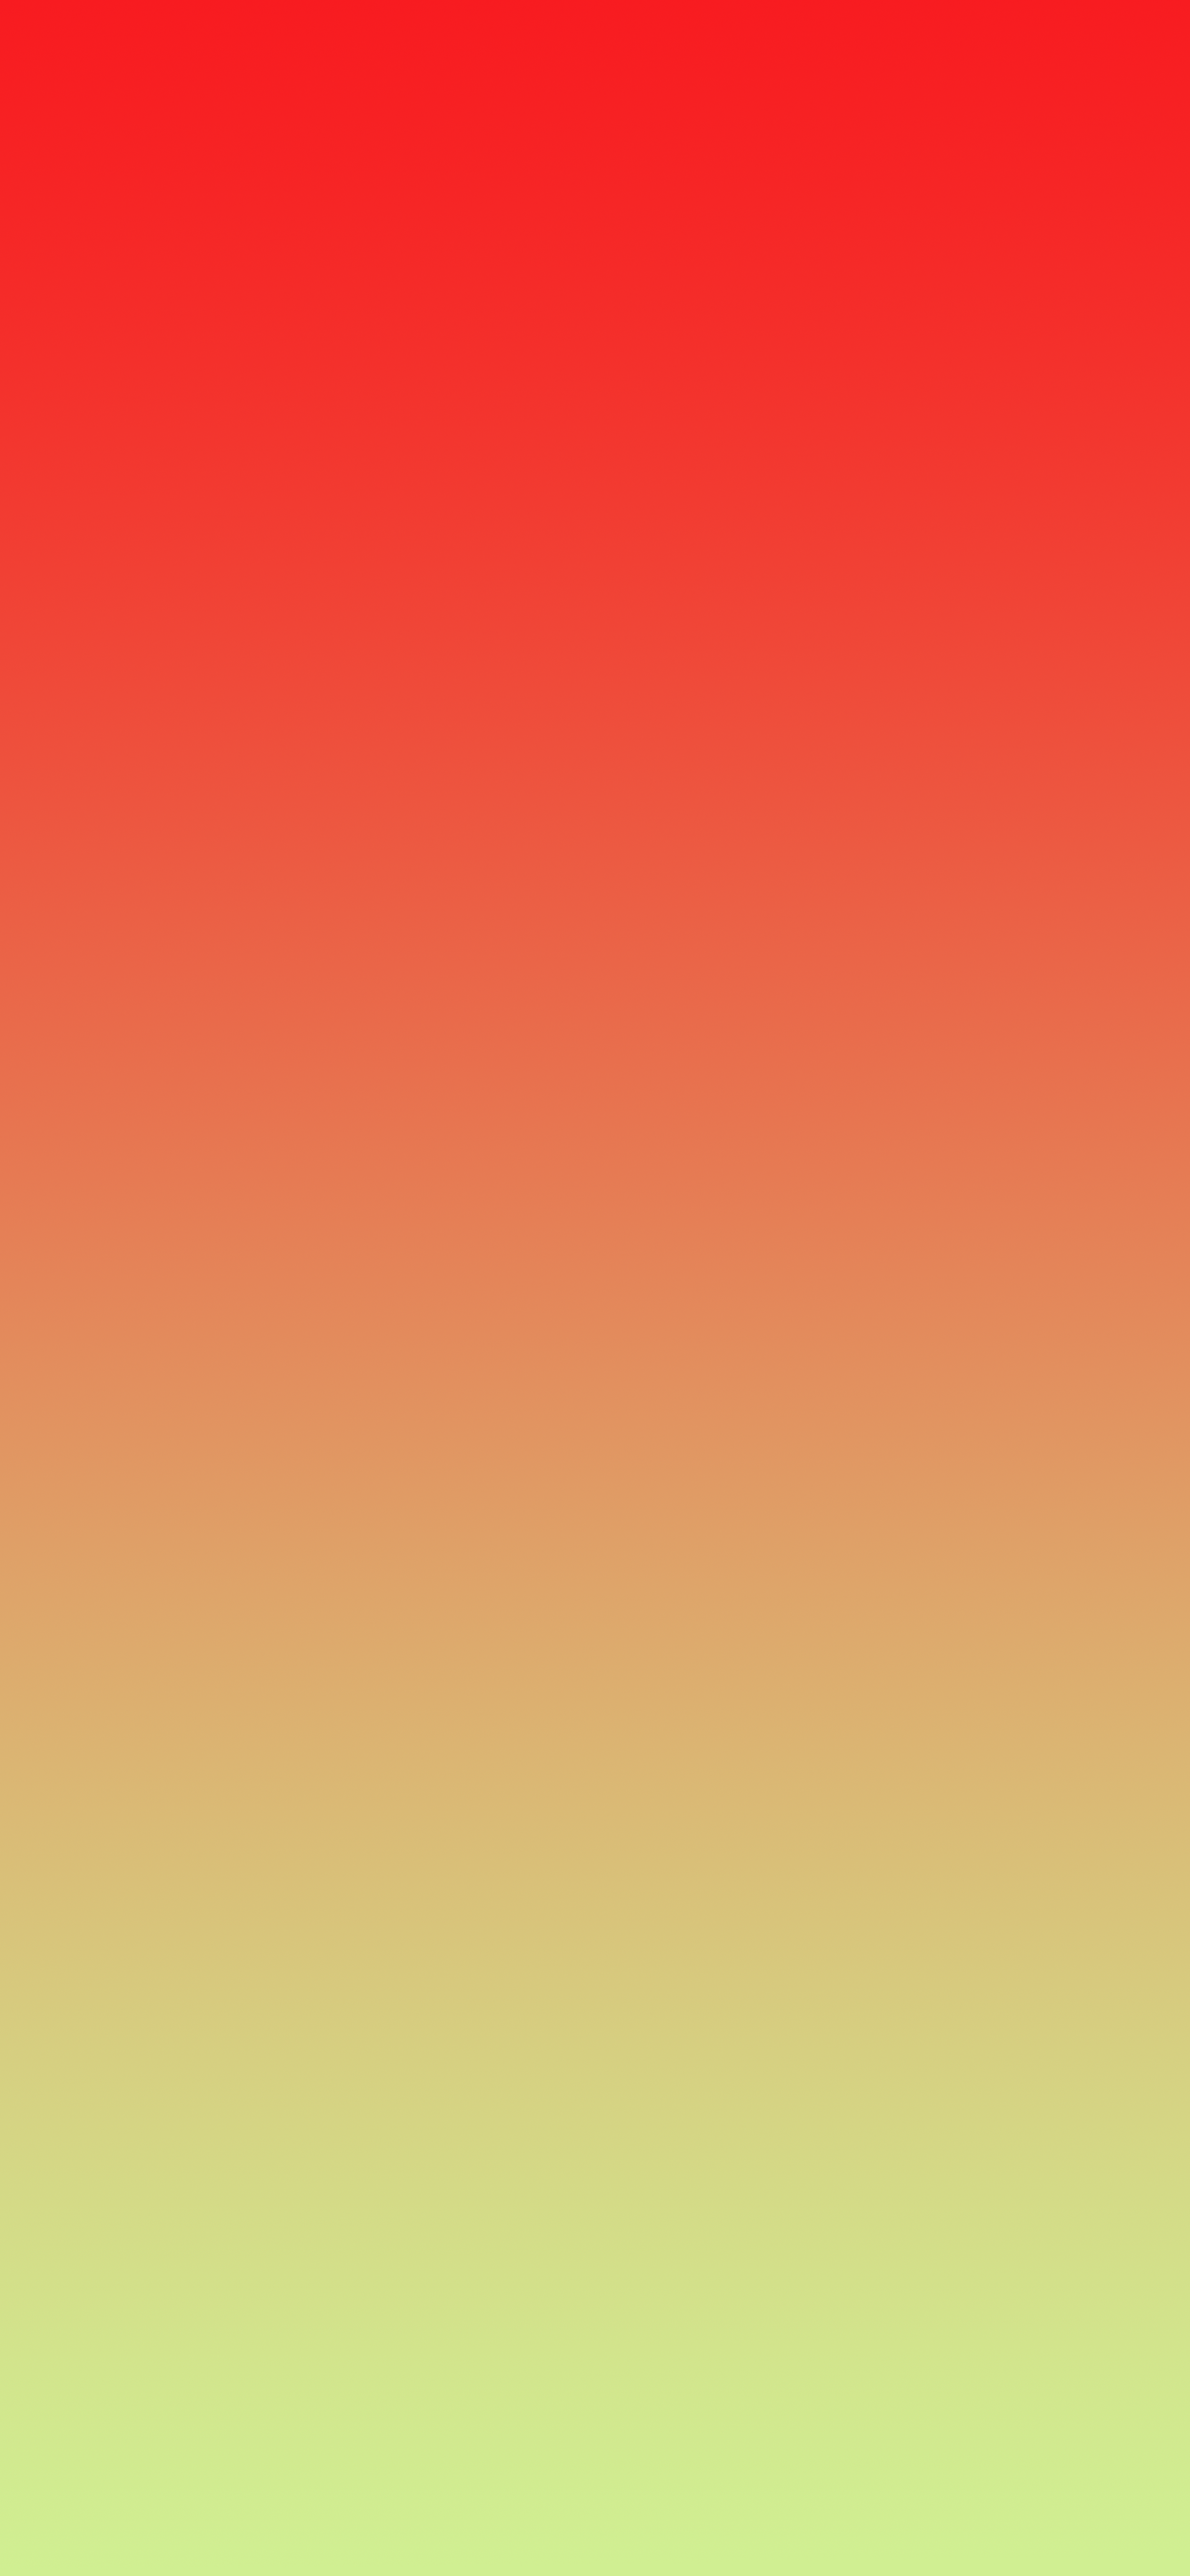 iPhone wallpaper gradient orange red Fonds d'écran iPhone du 25/01/2019